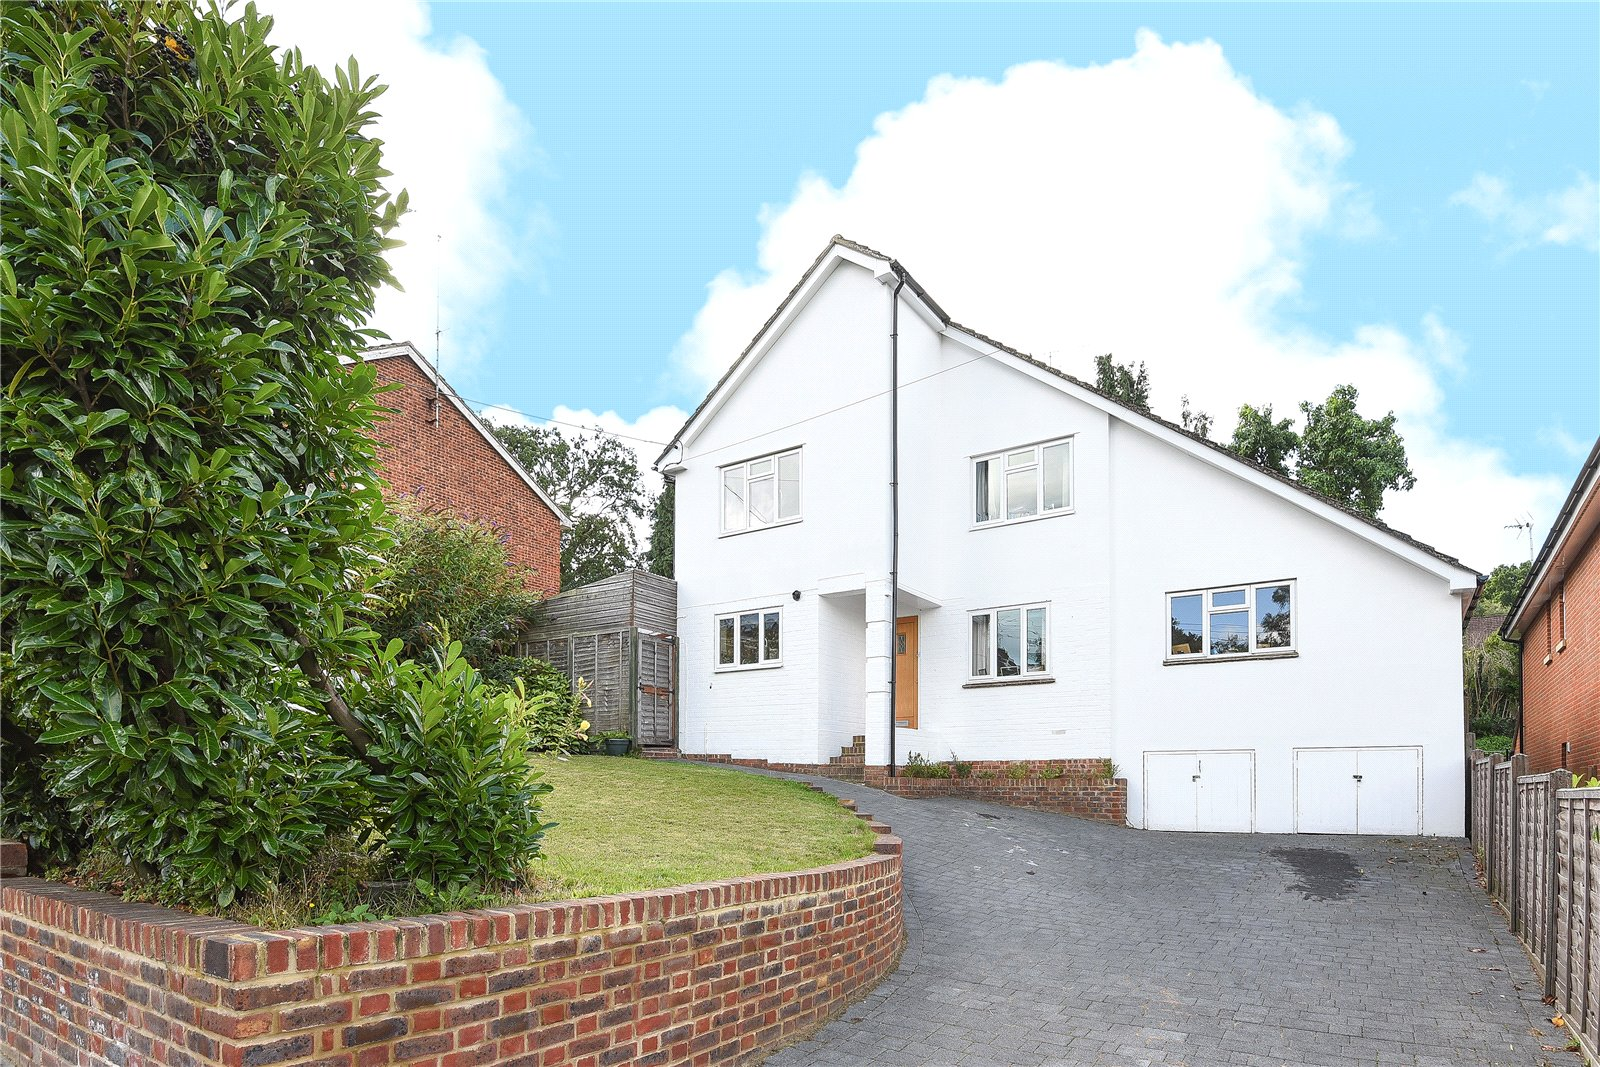 4 Bedrooms Detached House for sale in North Road, Ascot, Berkshire, SL5